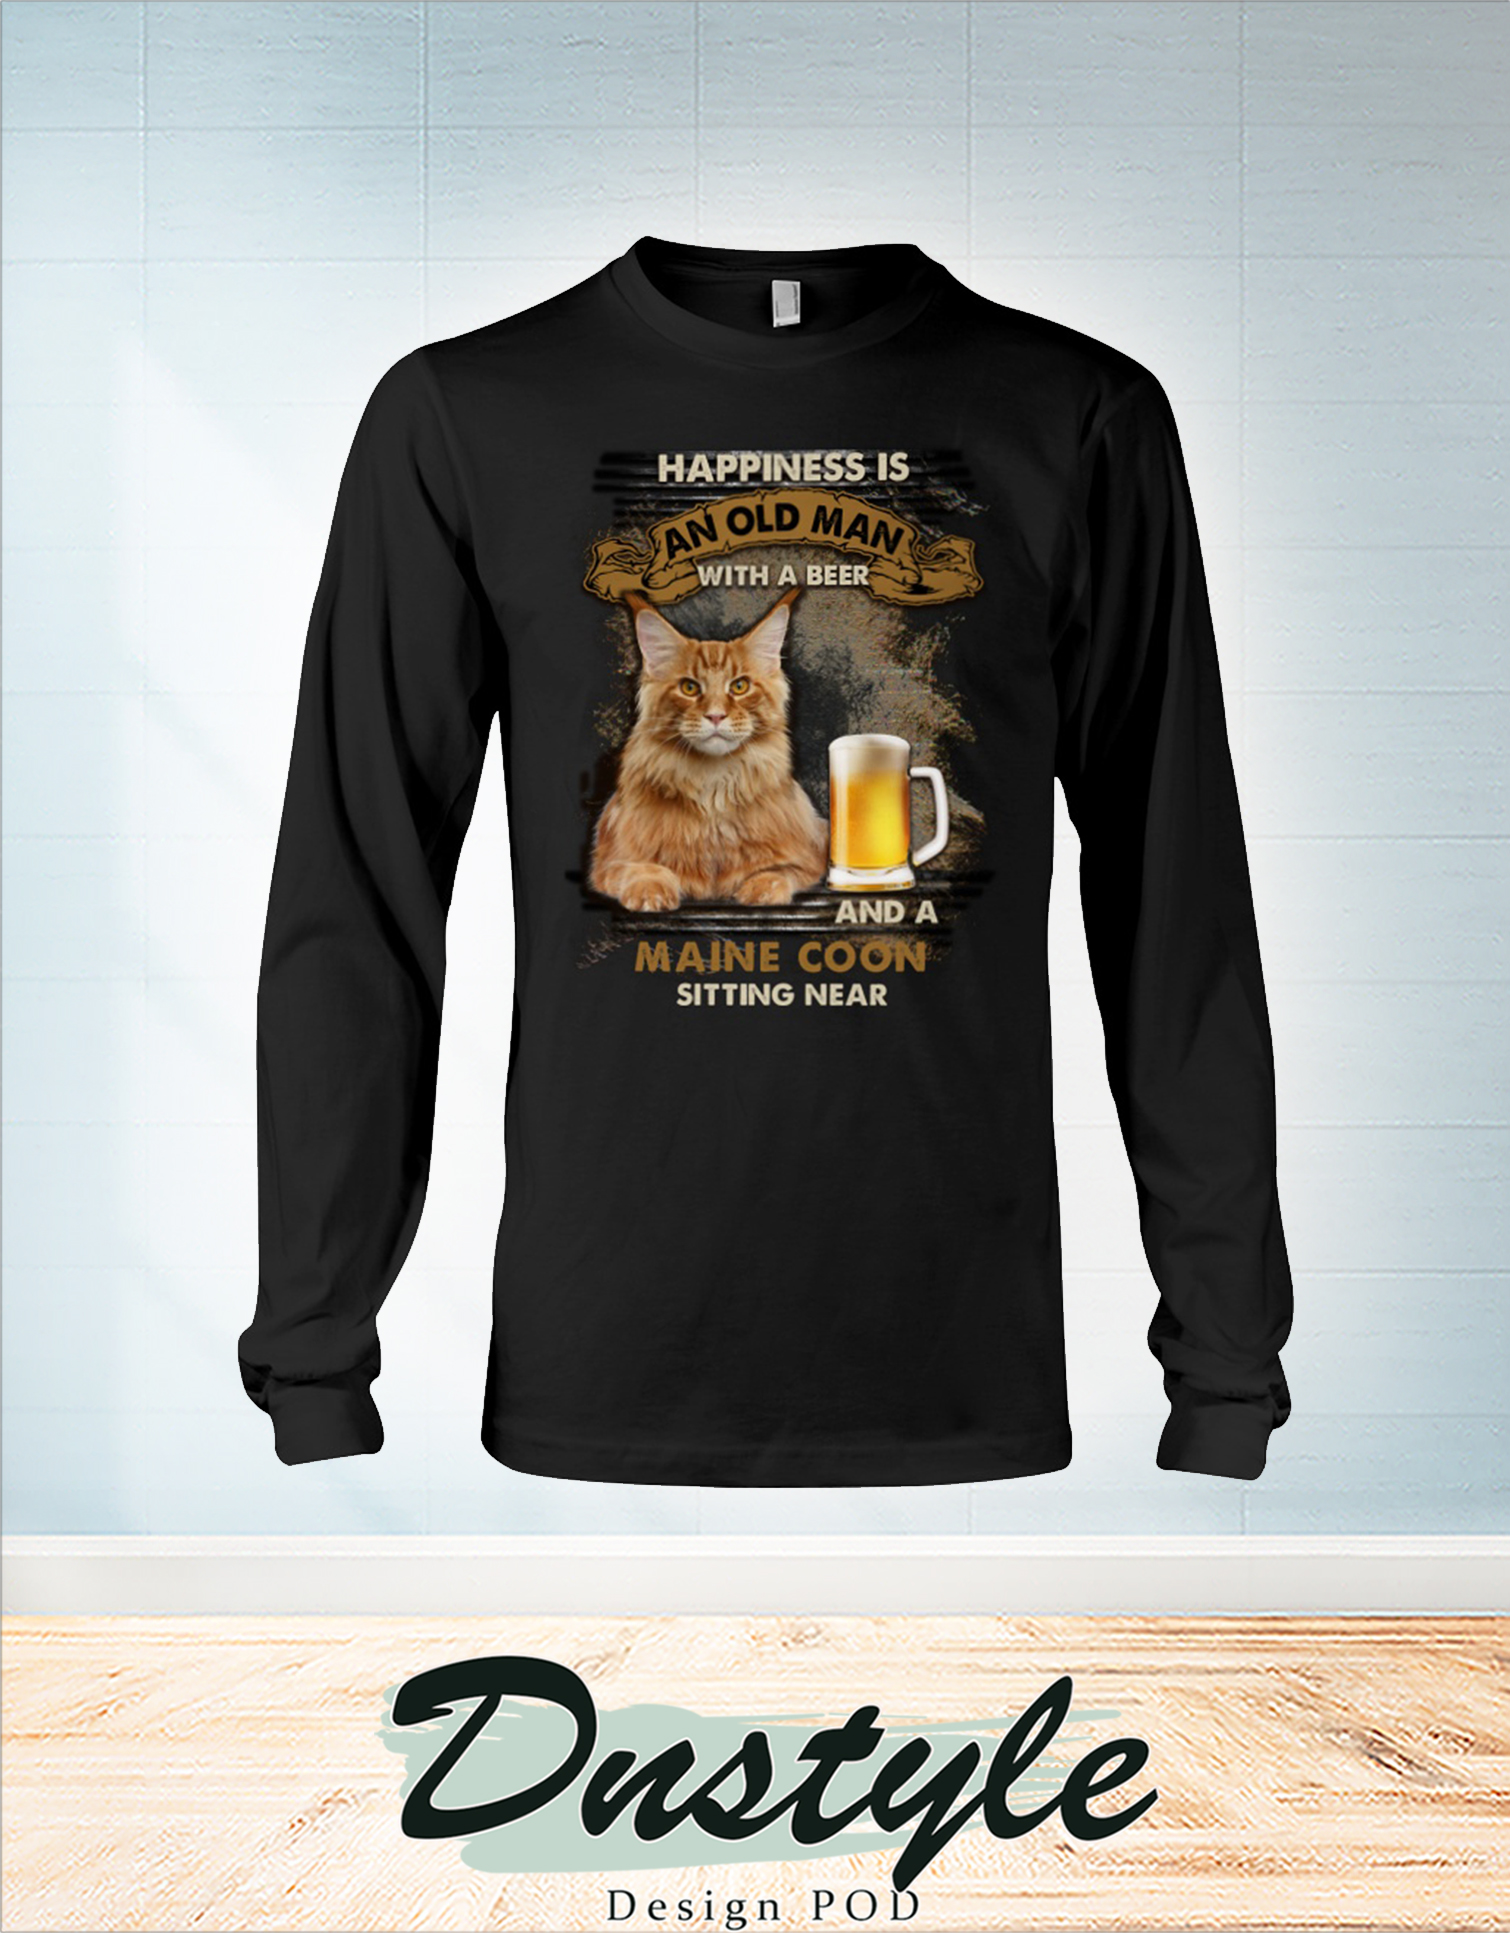 Happiness is an old man with a beer and a Maine Coon sitting near long sleeve